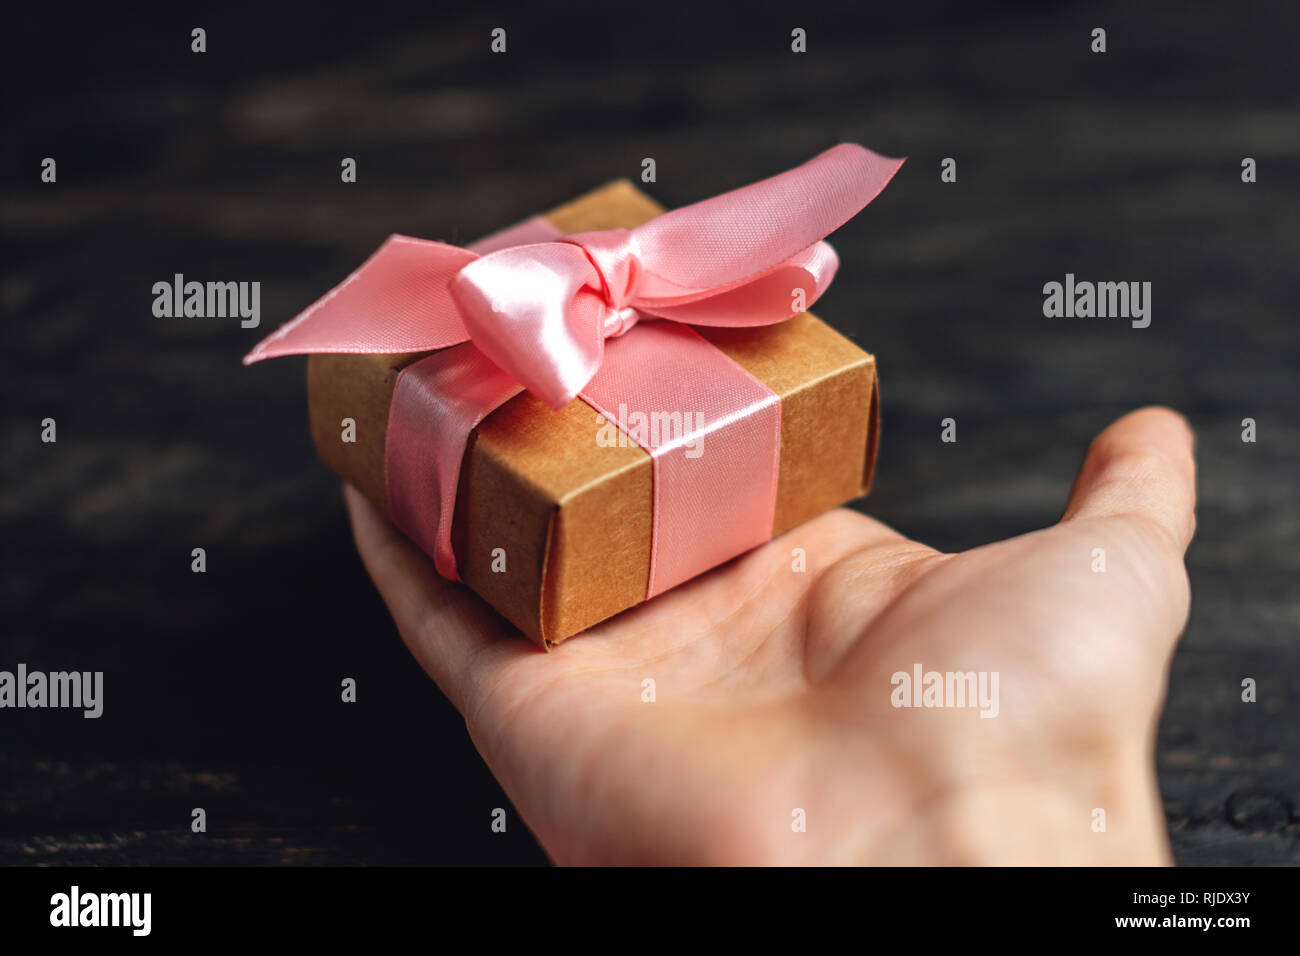 Hand holding Holiday gift box Packed in crafting paper with pink ribbon on dark wooden background. The concept of beautiful cards with gifts - Stock Image